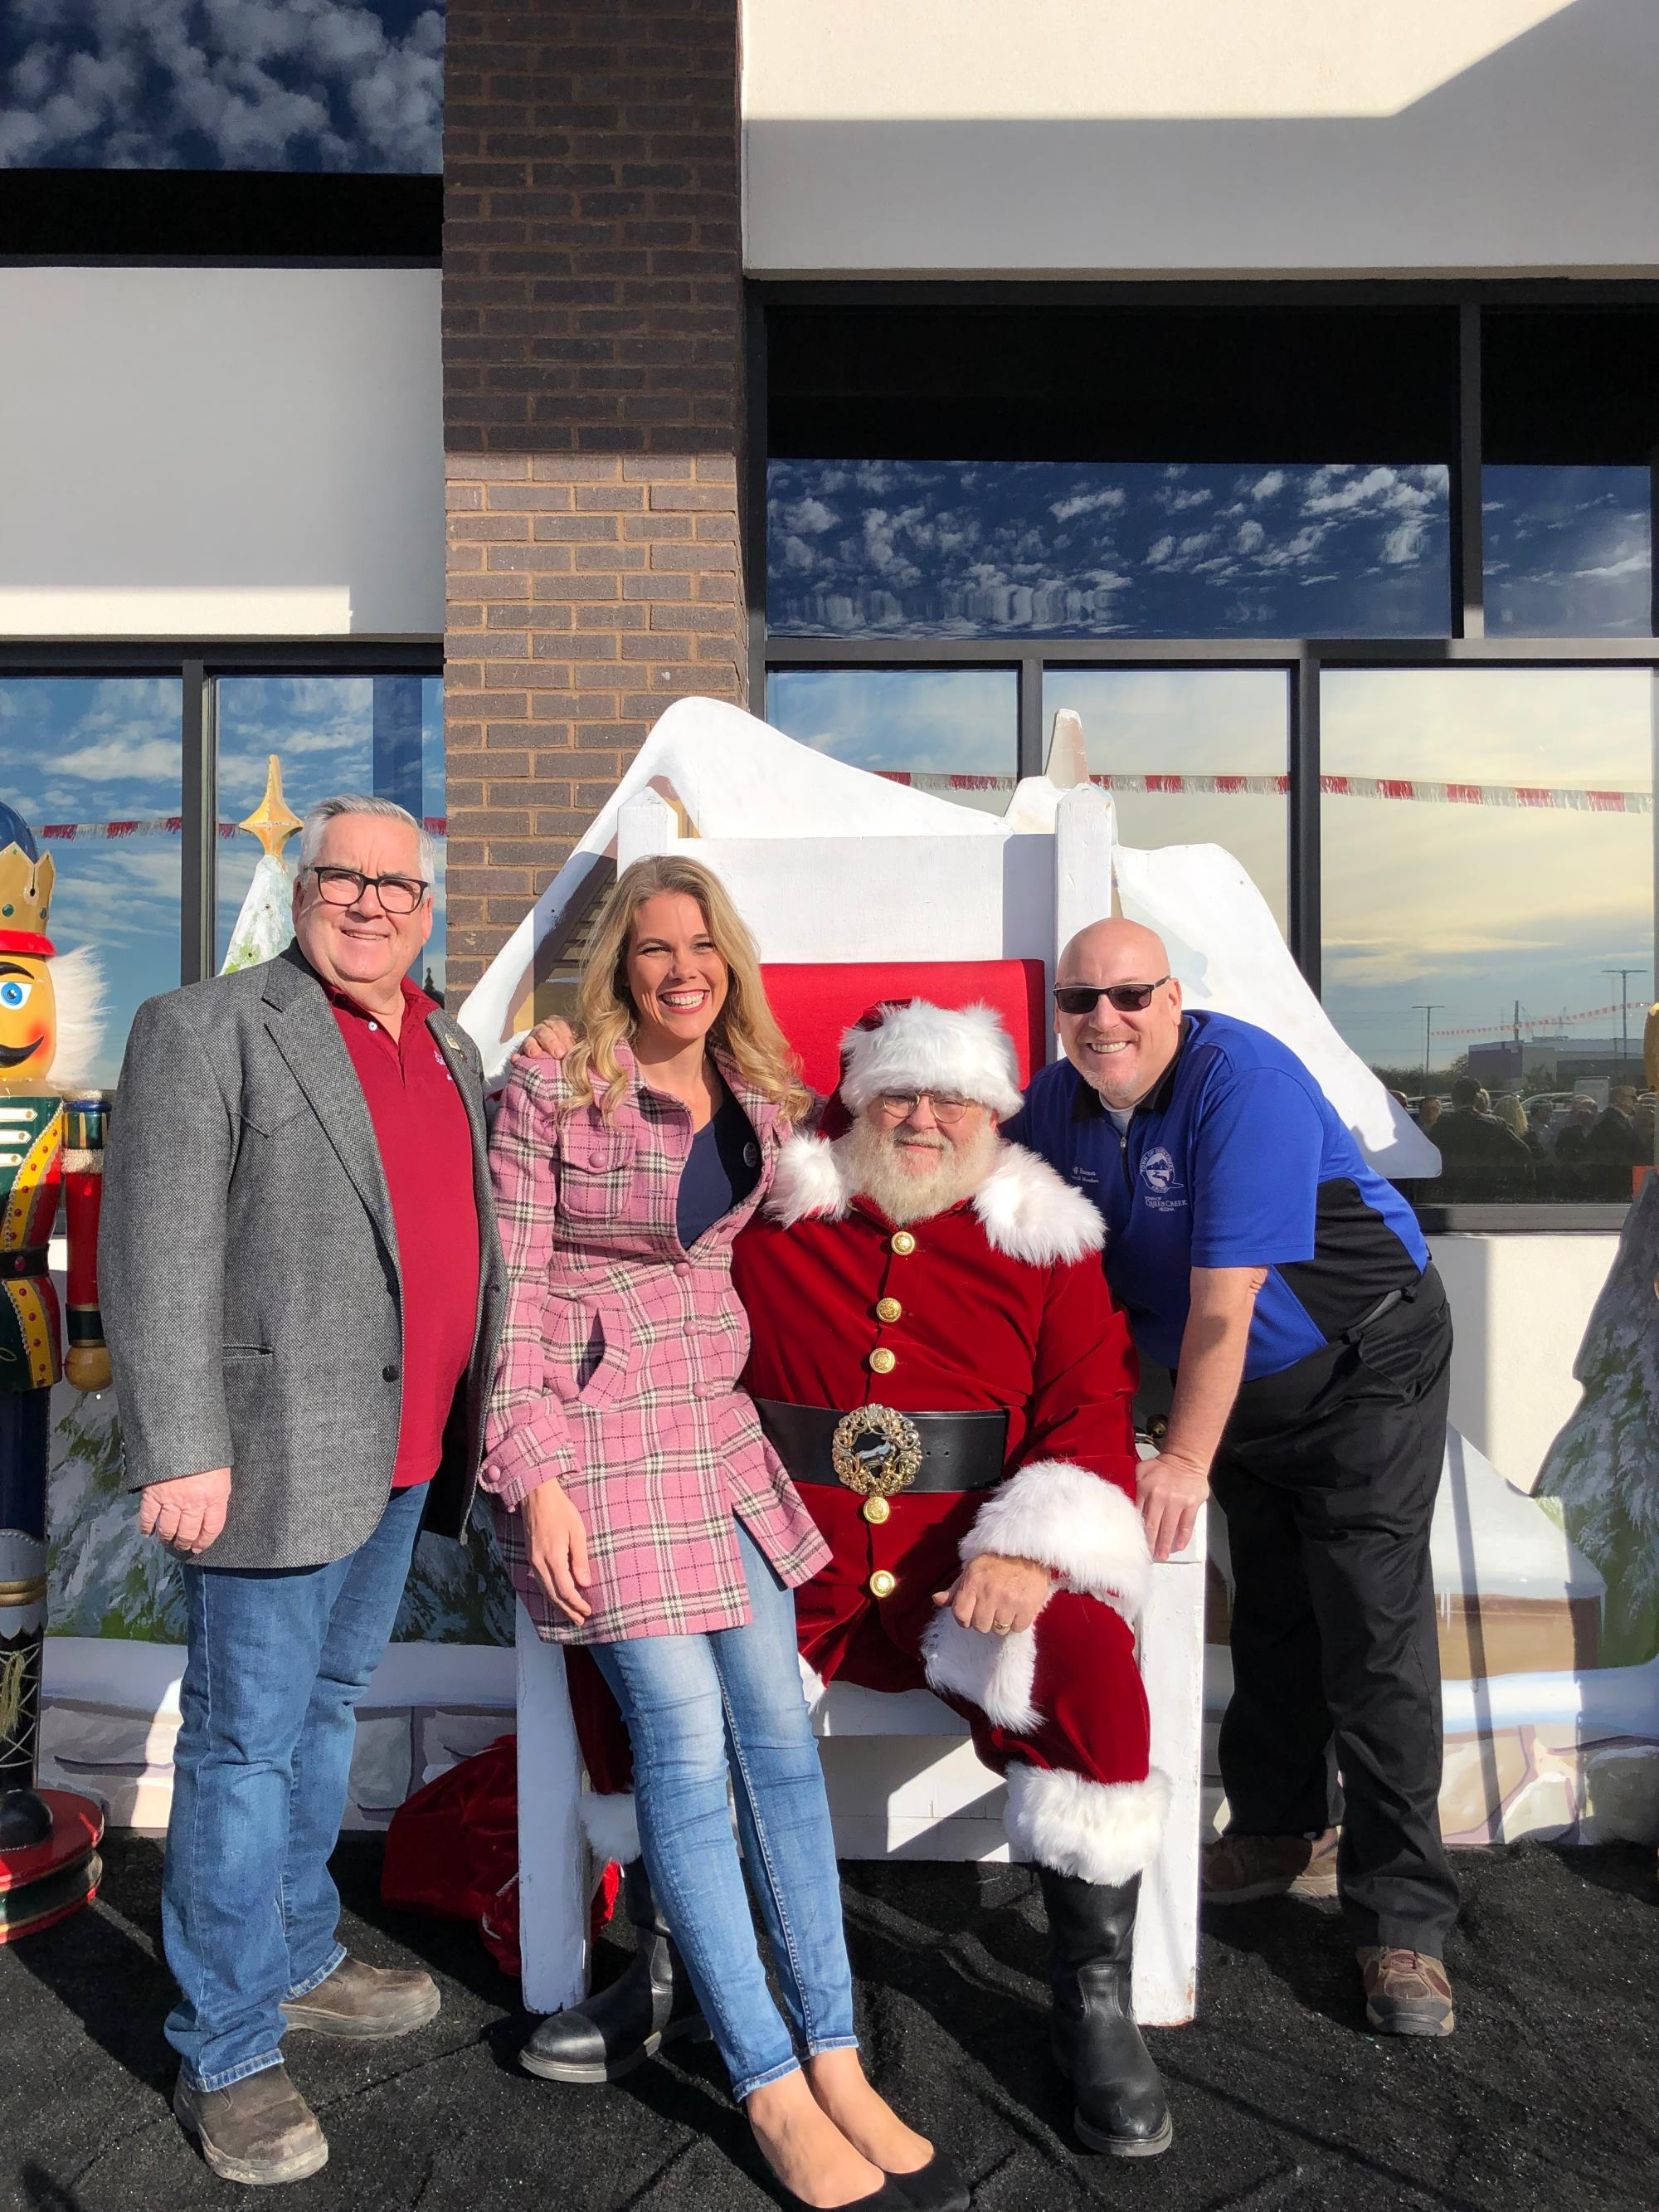 Mayor Barney and Council Members Brown and Wheatley with Santa on December 5